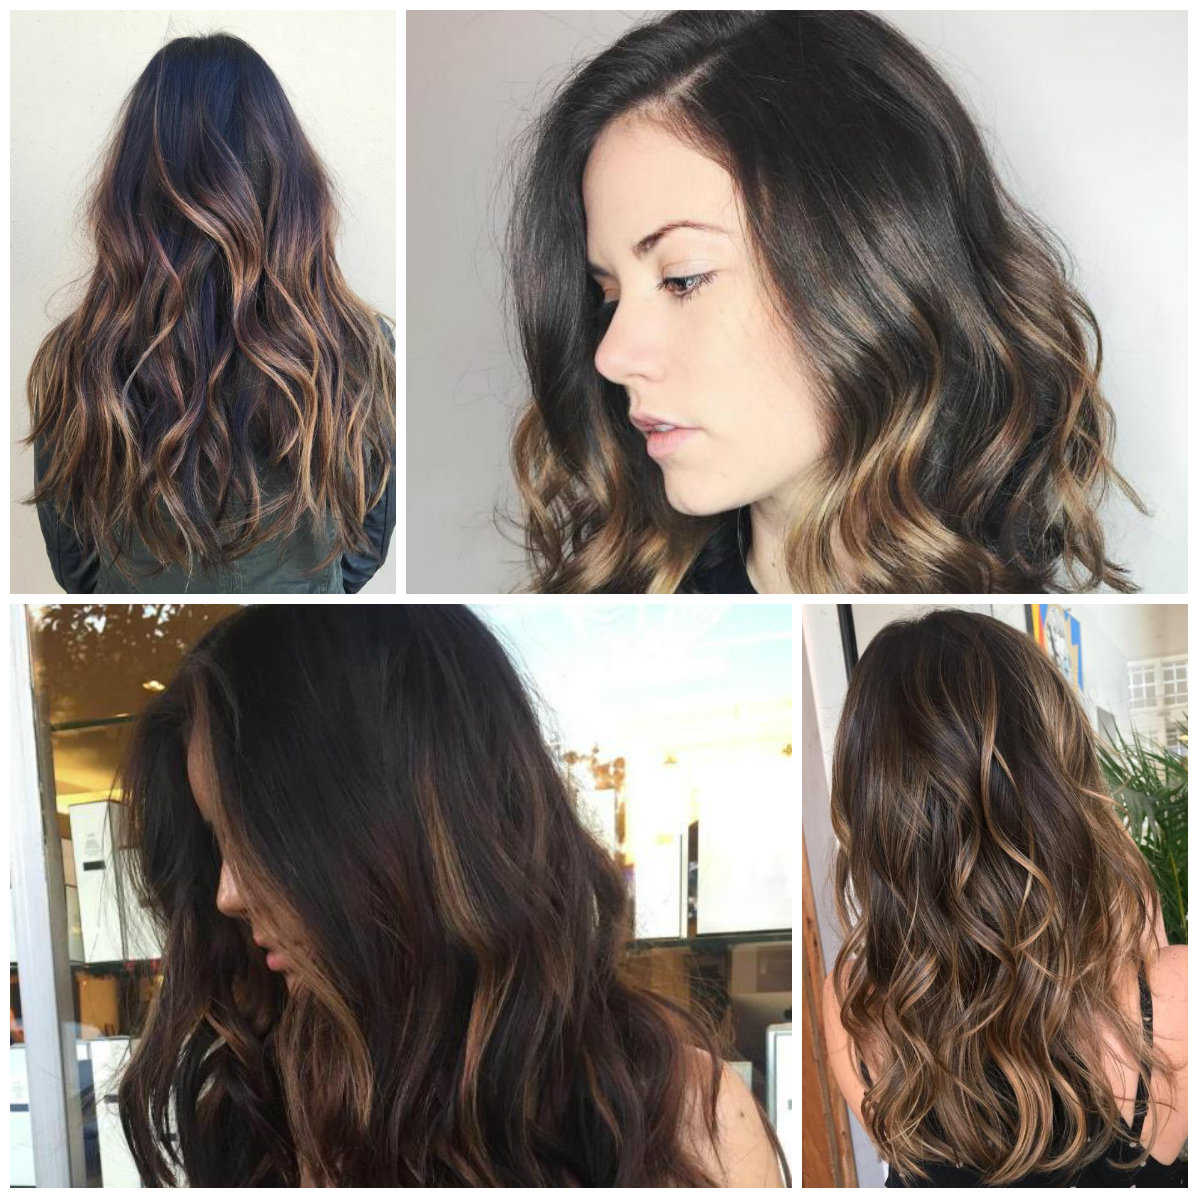 6 Highlighted Hair For Brunettes In 2018 Hairstyles Hair Color